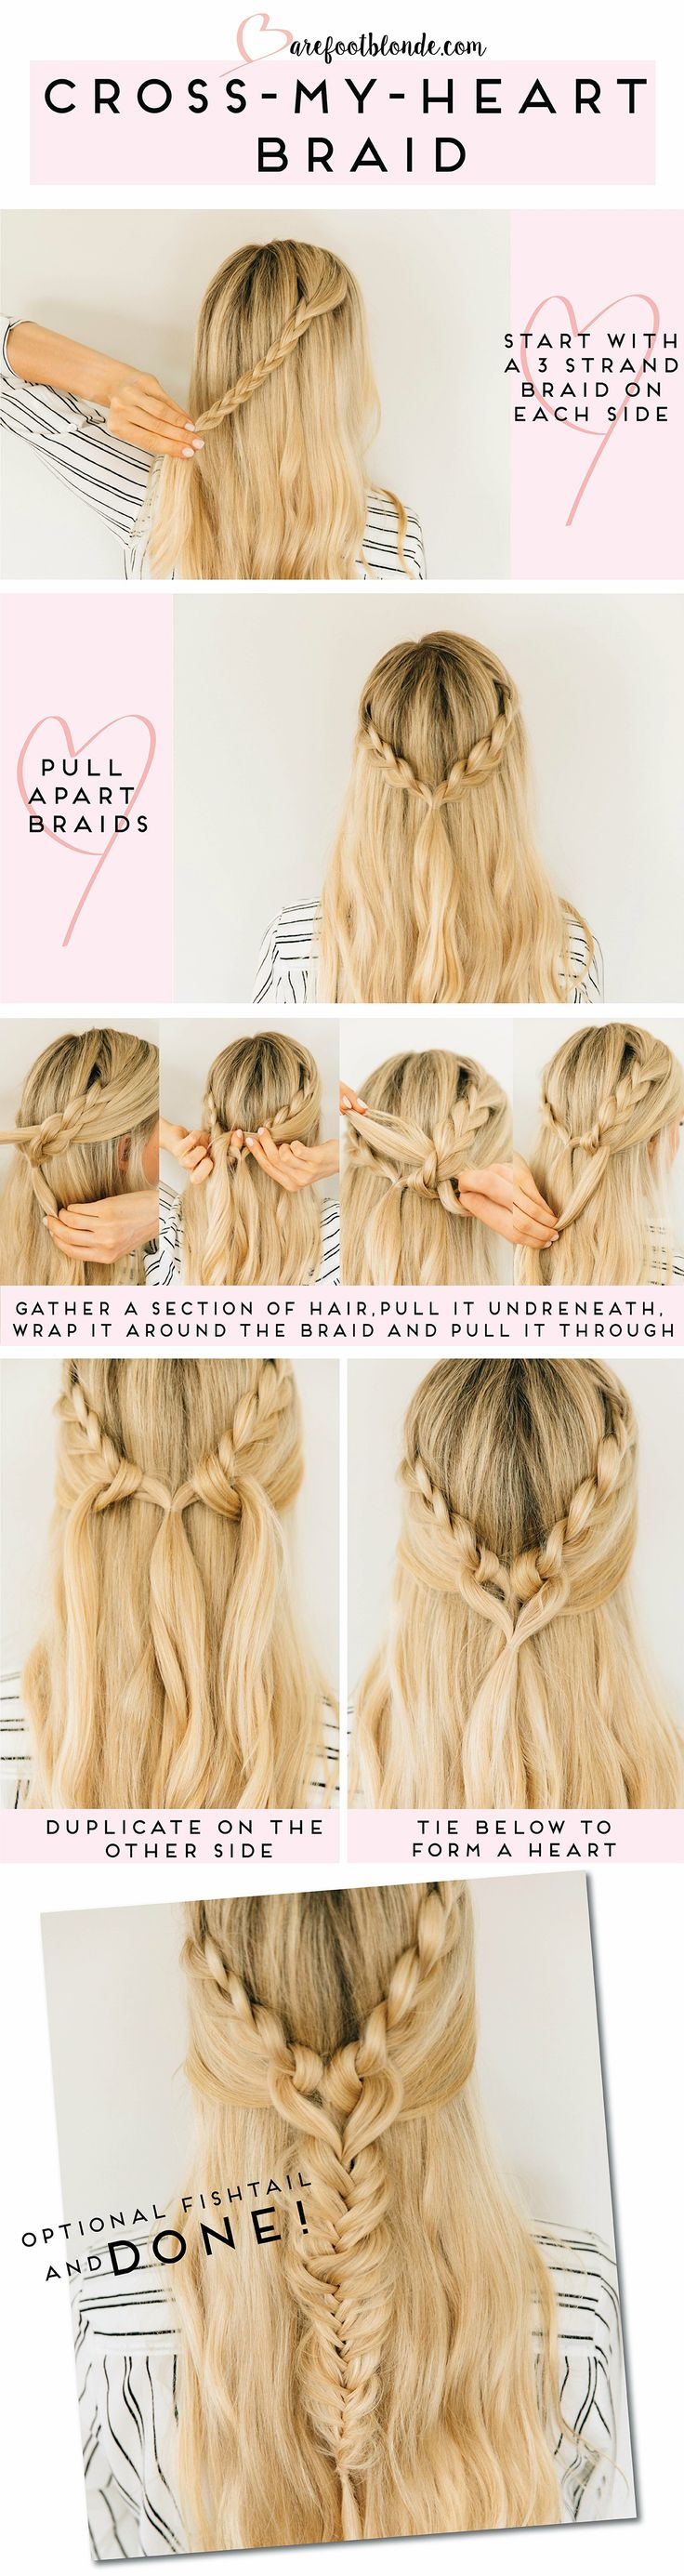 Cross my Heart Braid http://shedonteversleep.tumblr.com/post/157435335253/short-hair-trends-for-2017-short-hairstyles-2017